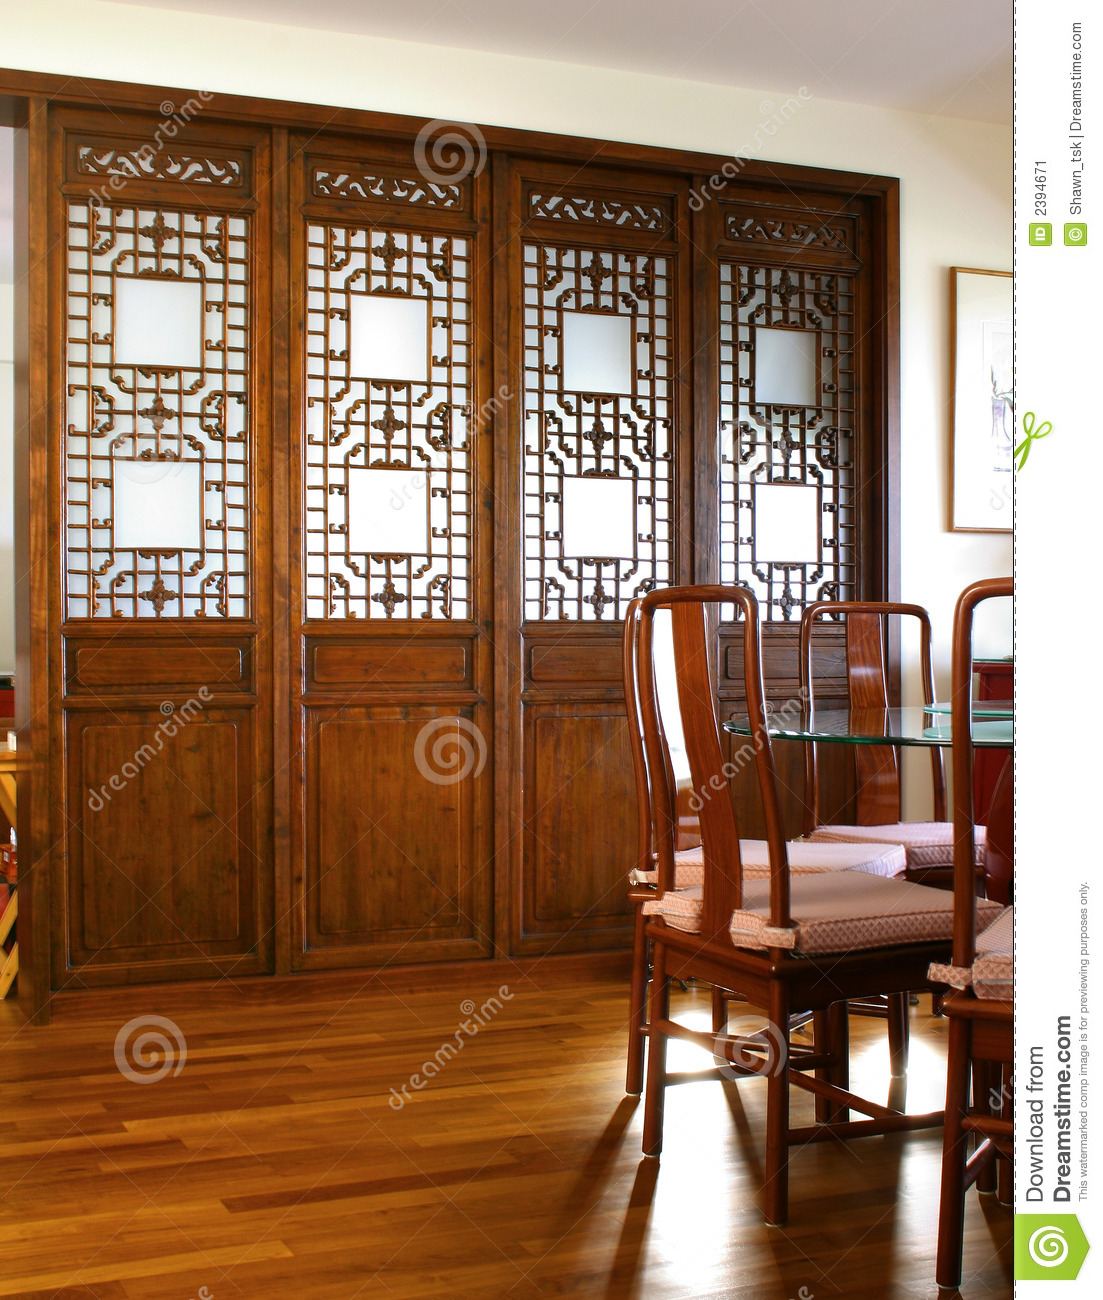 Interior design dining area stock image image 2394671 for Interior design for dining area